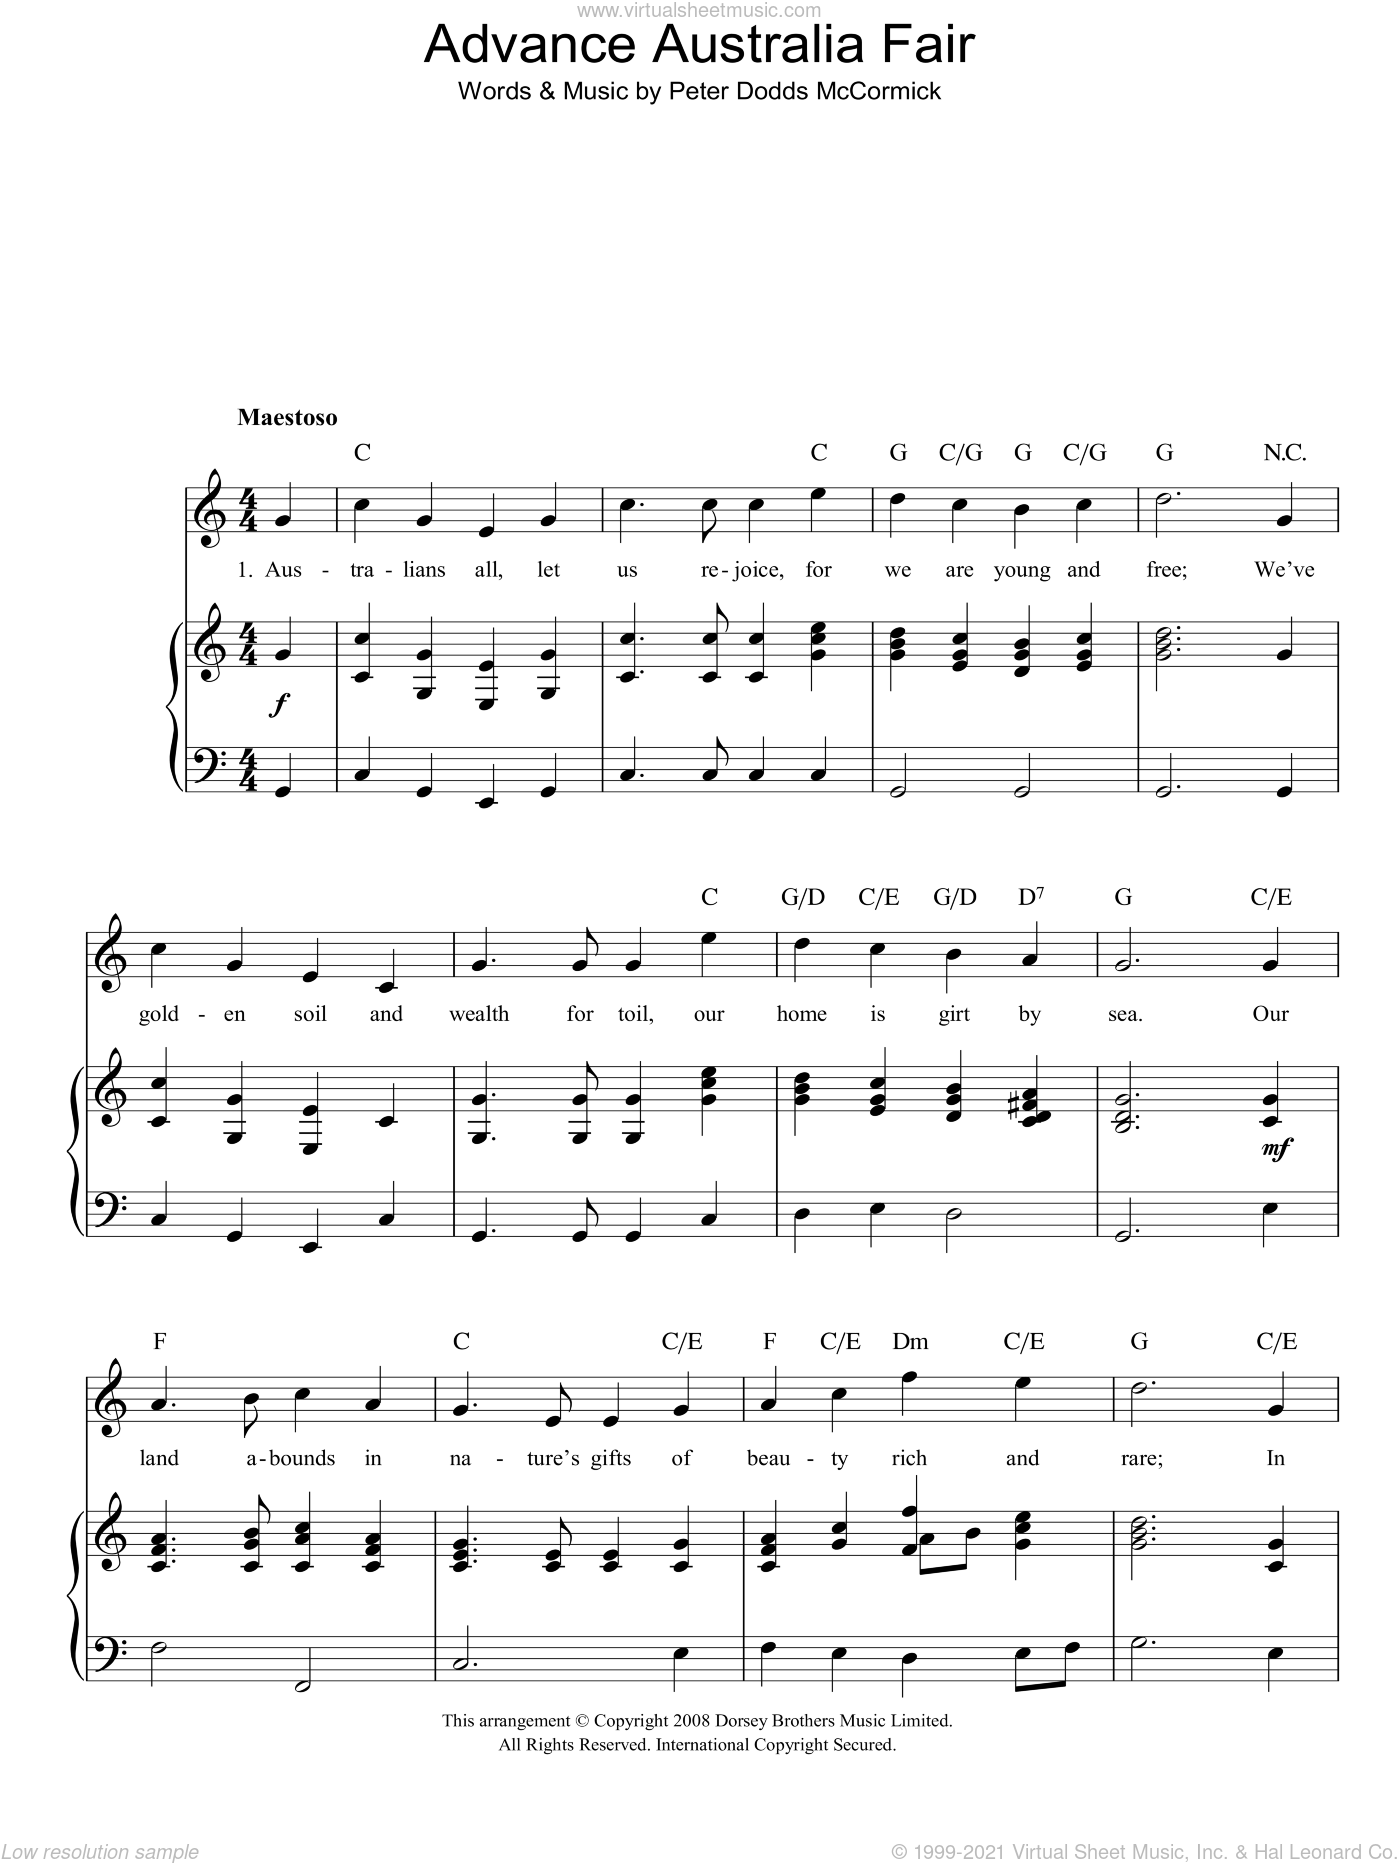 Advance Australia Fair (Australian National Anthem) sheet music for voice, piano or guitar by Peter Dodds McCormick